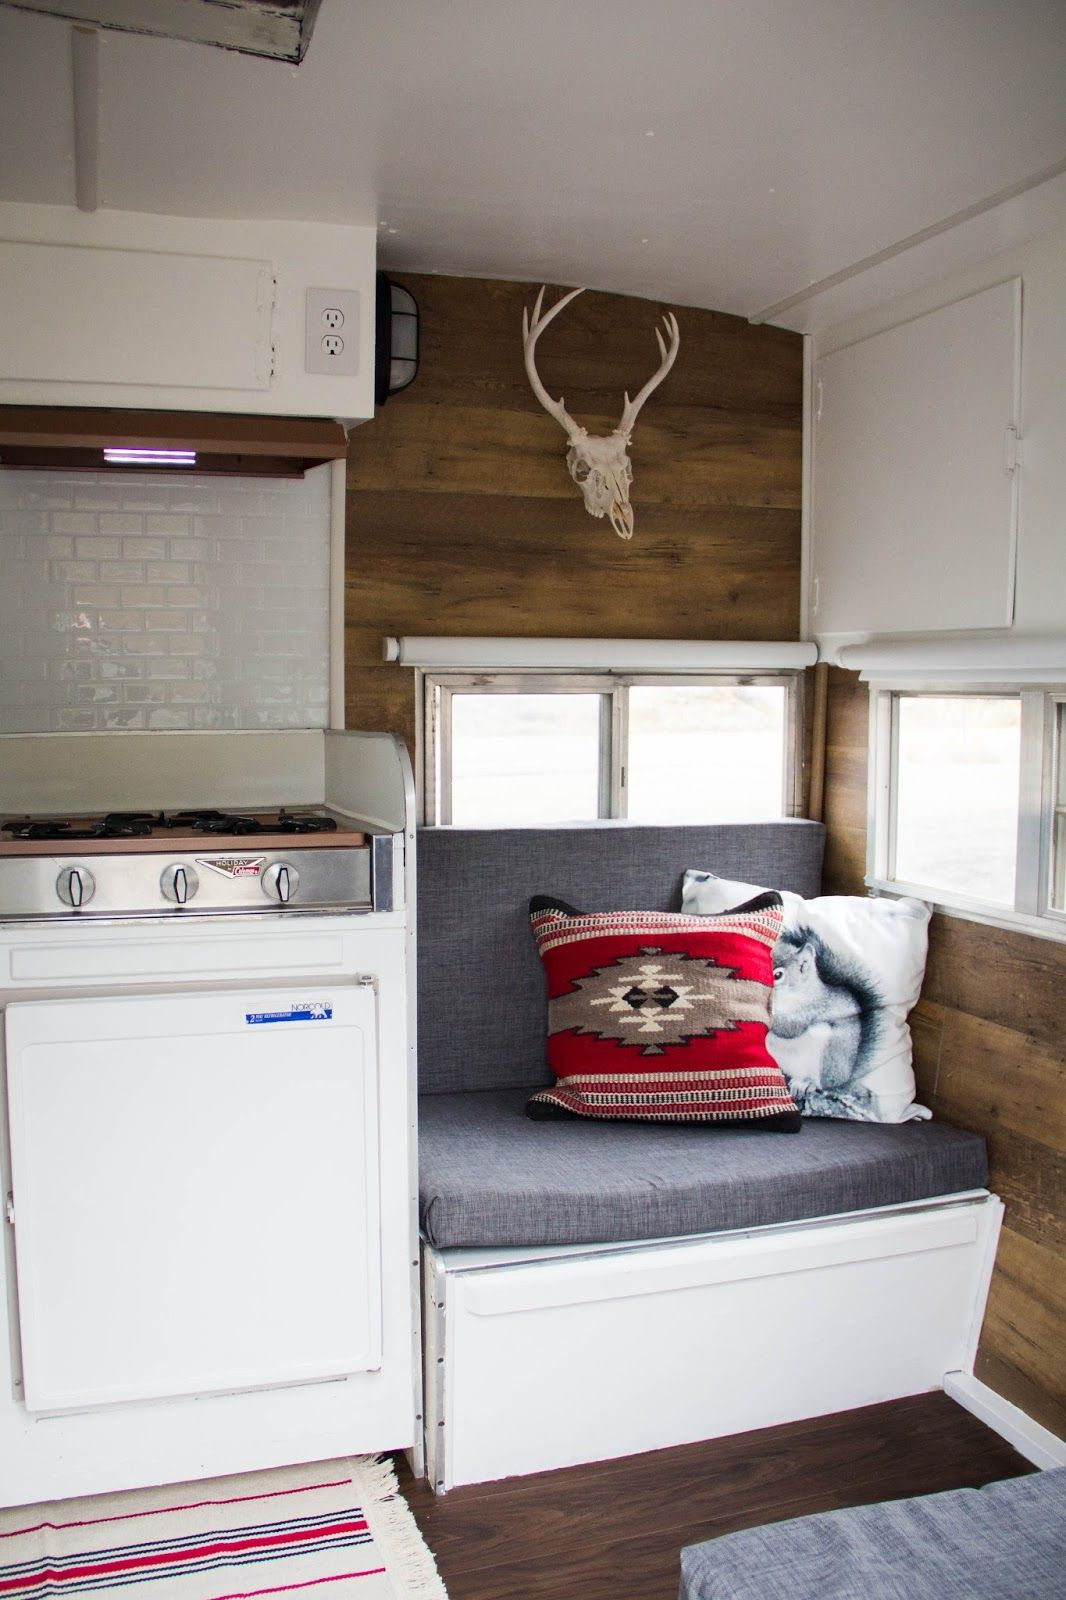 Camper remodel ideas 14 camper remodeling rv and camping Diy caravan interior design ideas